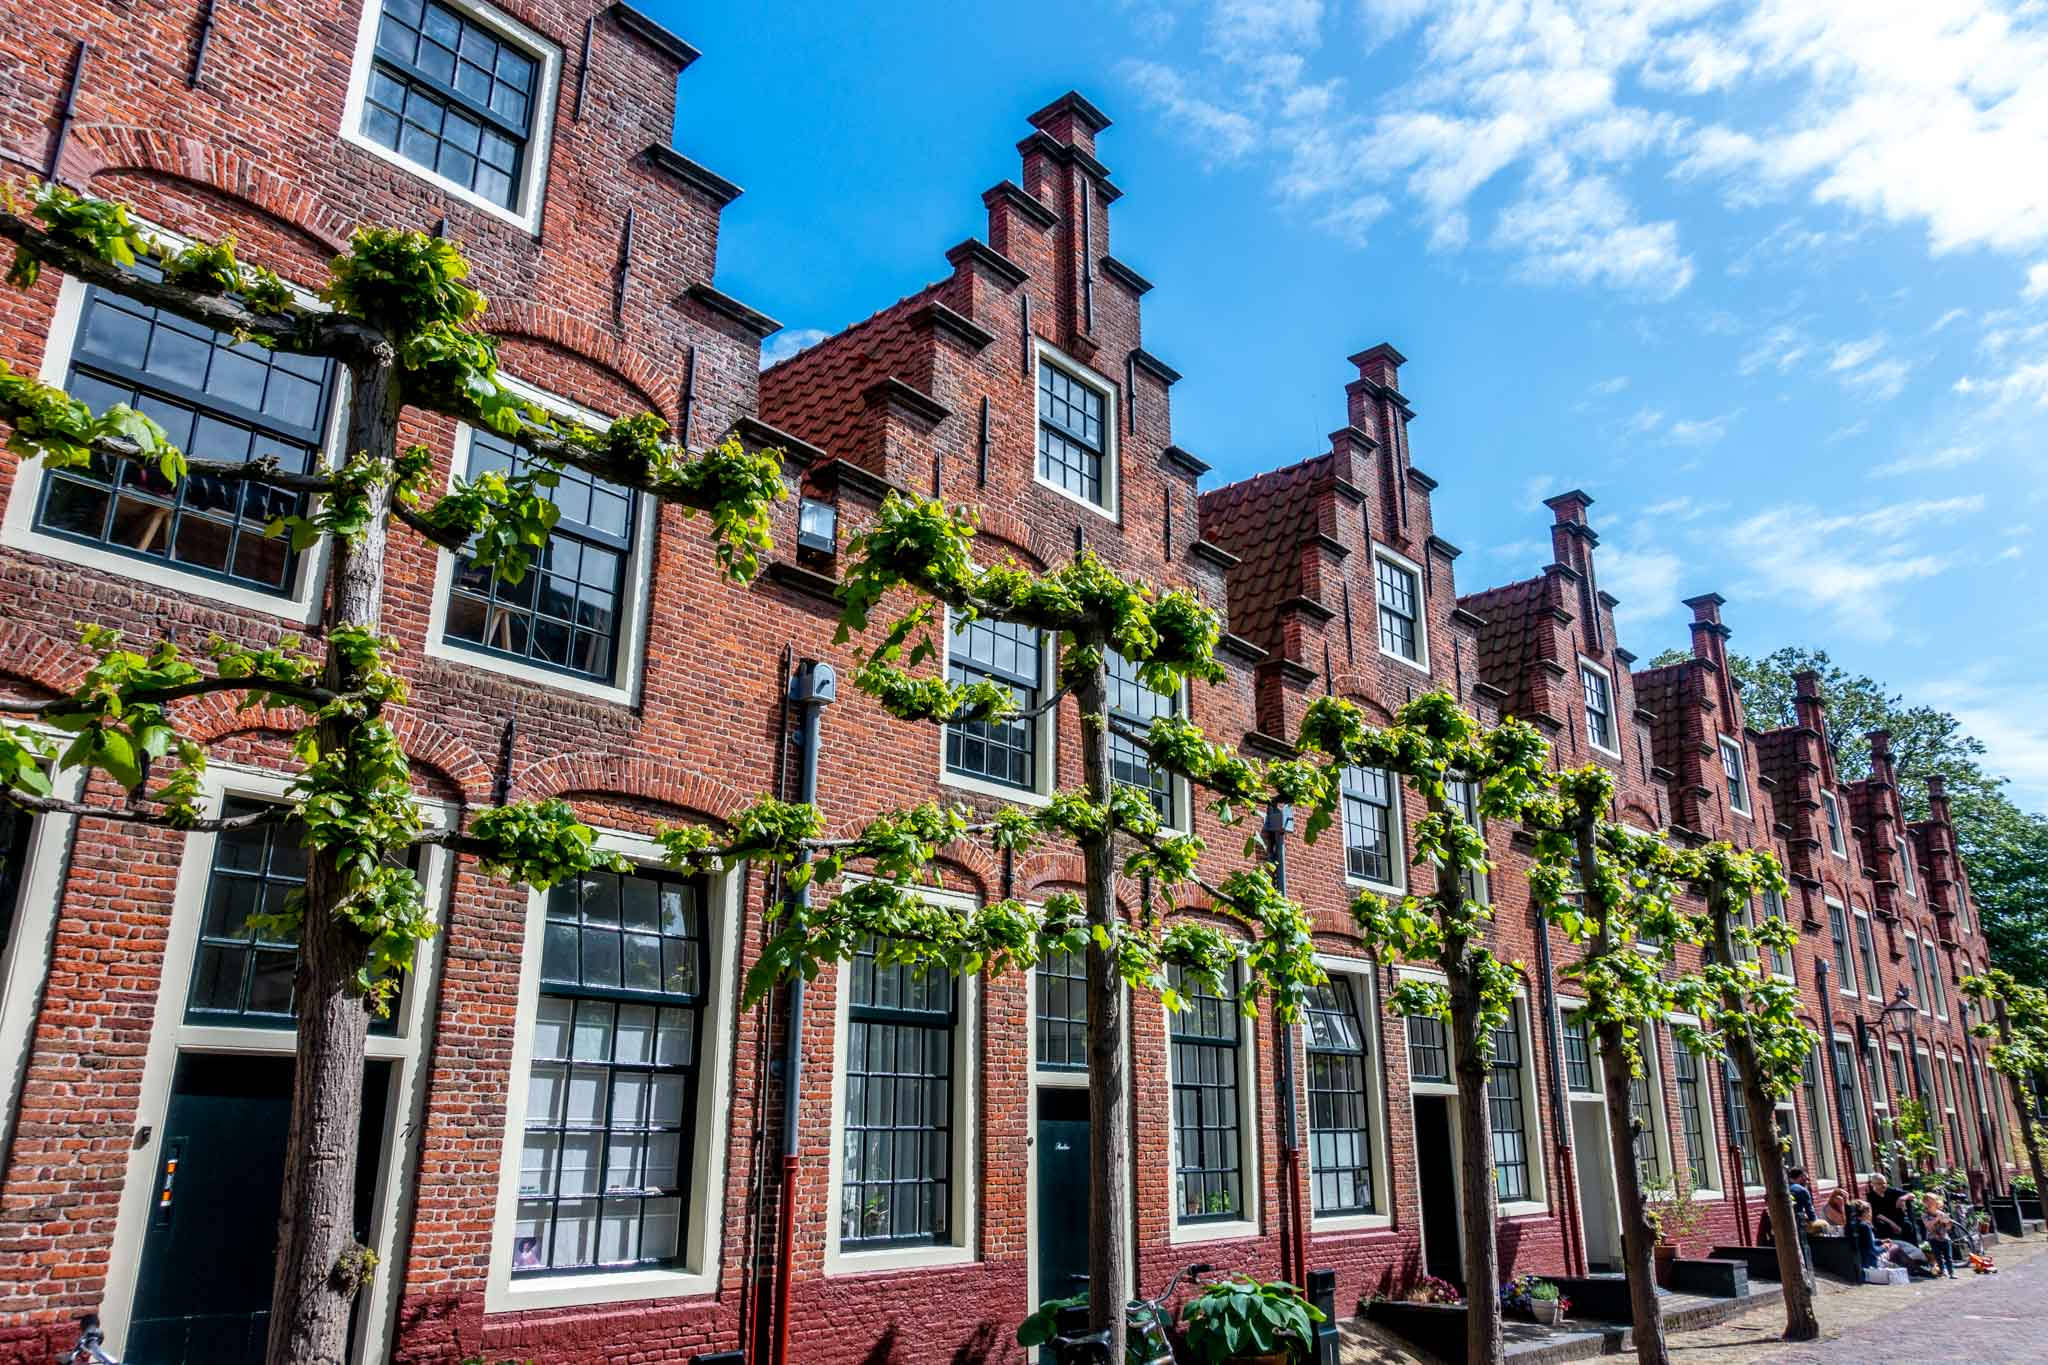 Row of red brick Dutch houses with step gabled roofs